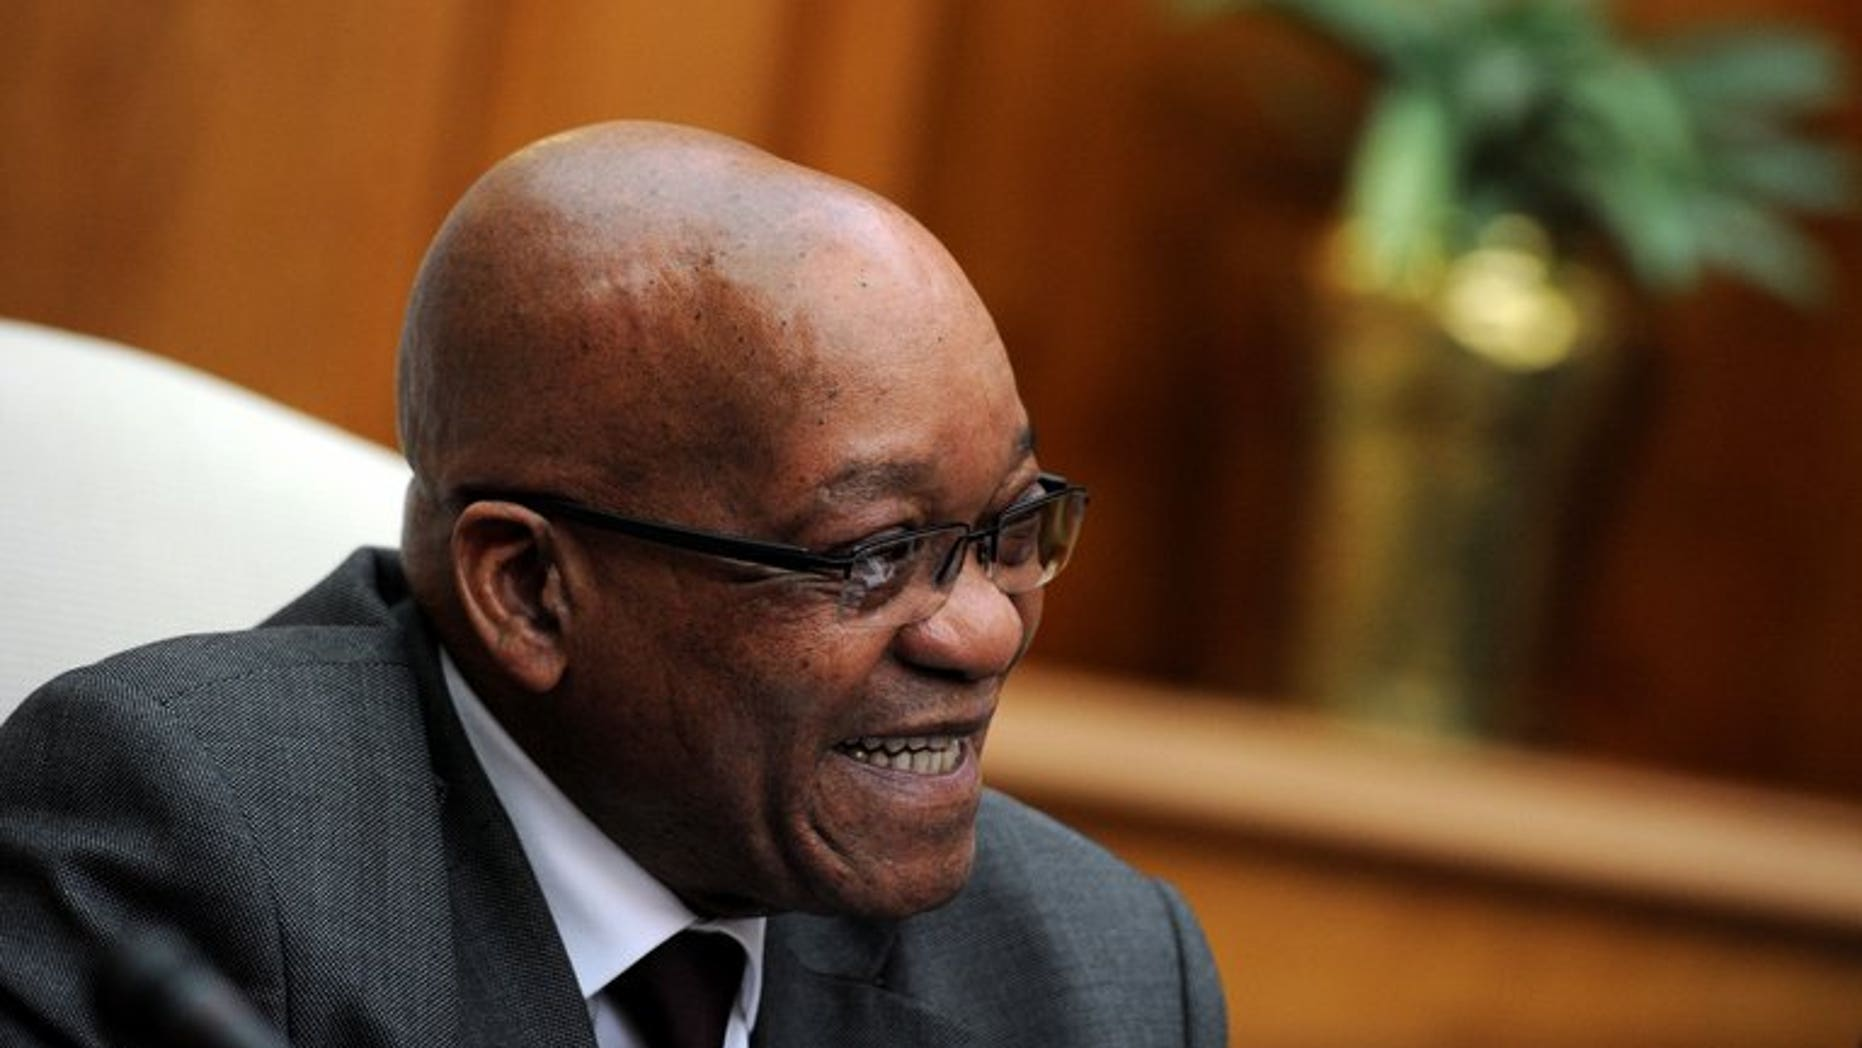 South Africa President Jacob Zuma gives a press conference on July 29, 2013 at the Unions Building in Pretoria. Zuma criticised the United Nations Security Council as 'outdated' and 'undemocratic' ahead of a world leaders' meeting in New York, according to a report Tuesday.